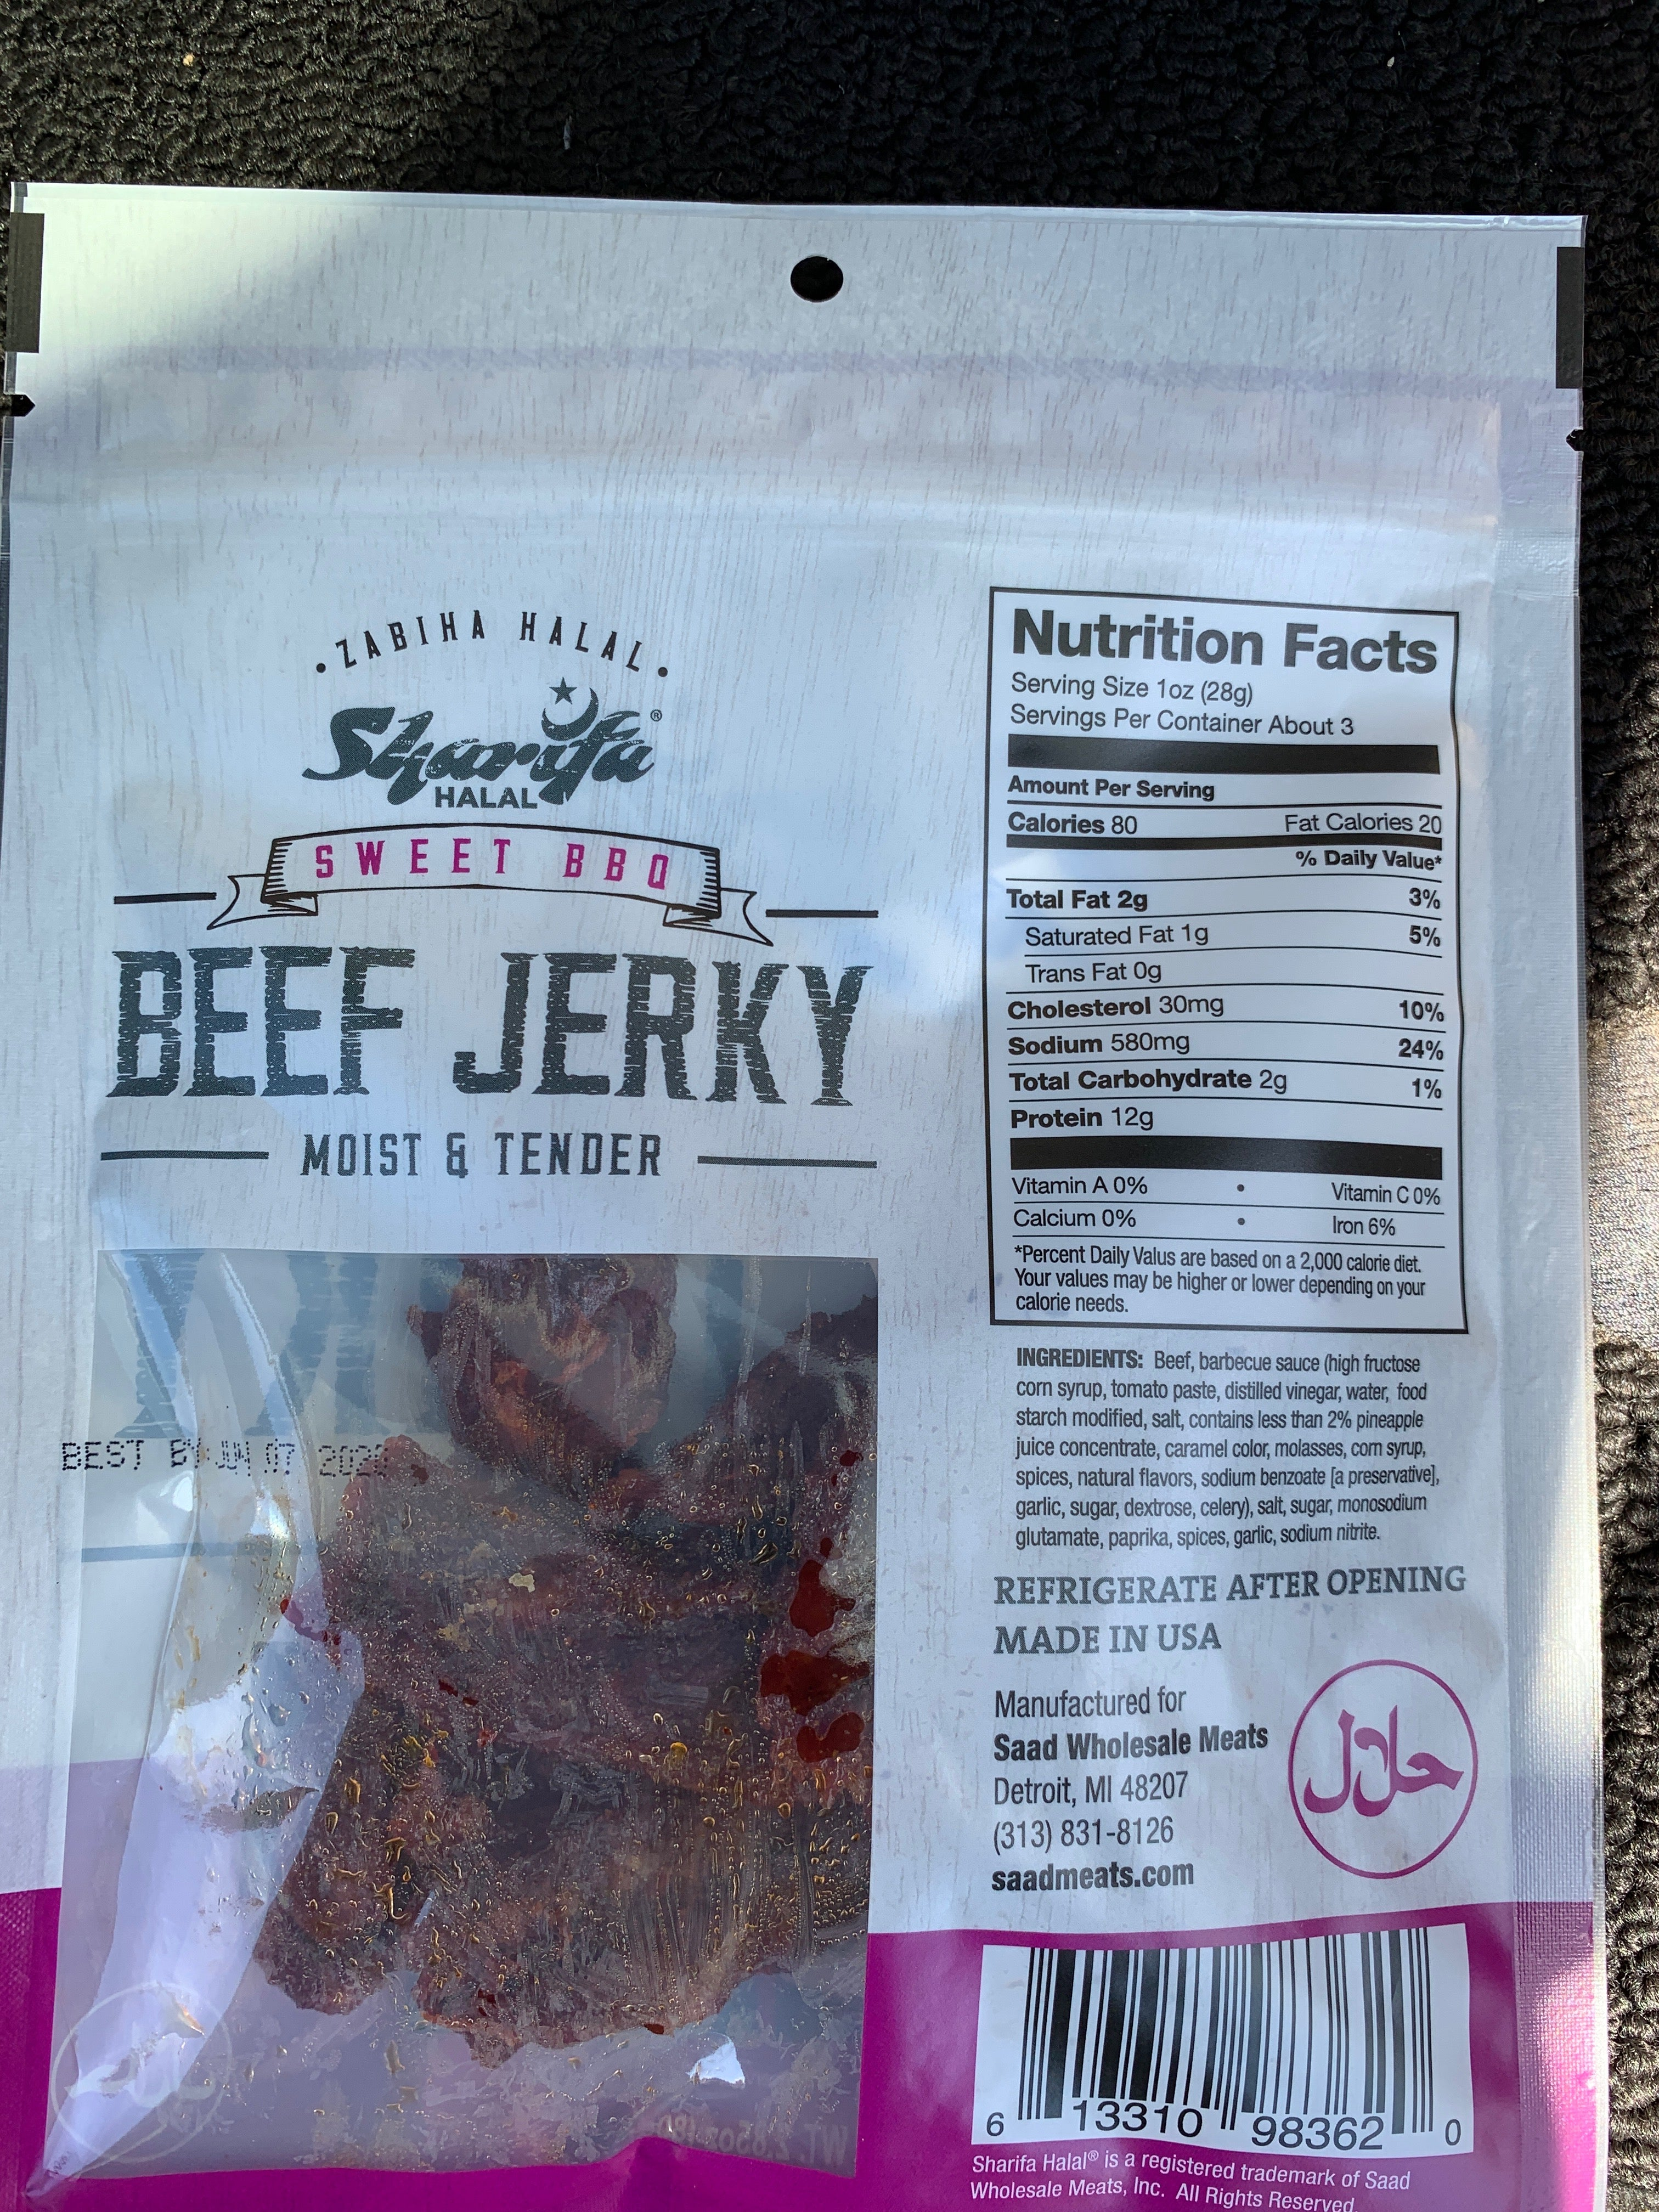 New! Sweet BBQ Beef Jerky